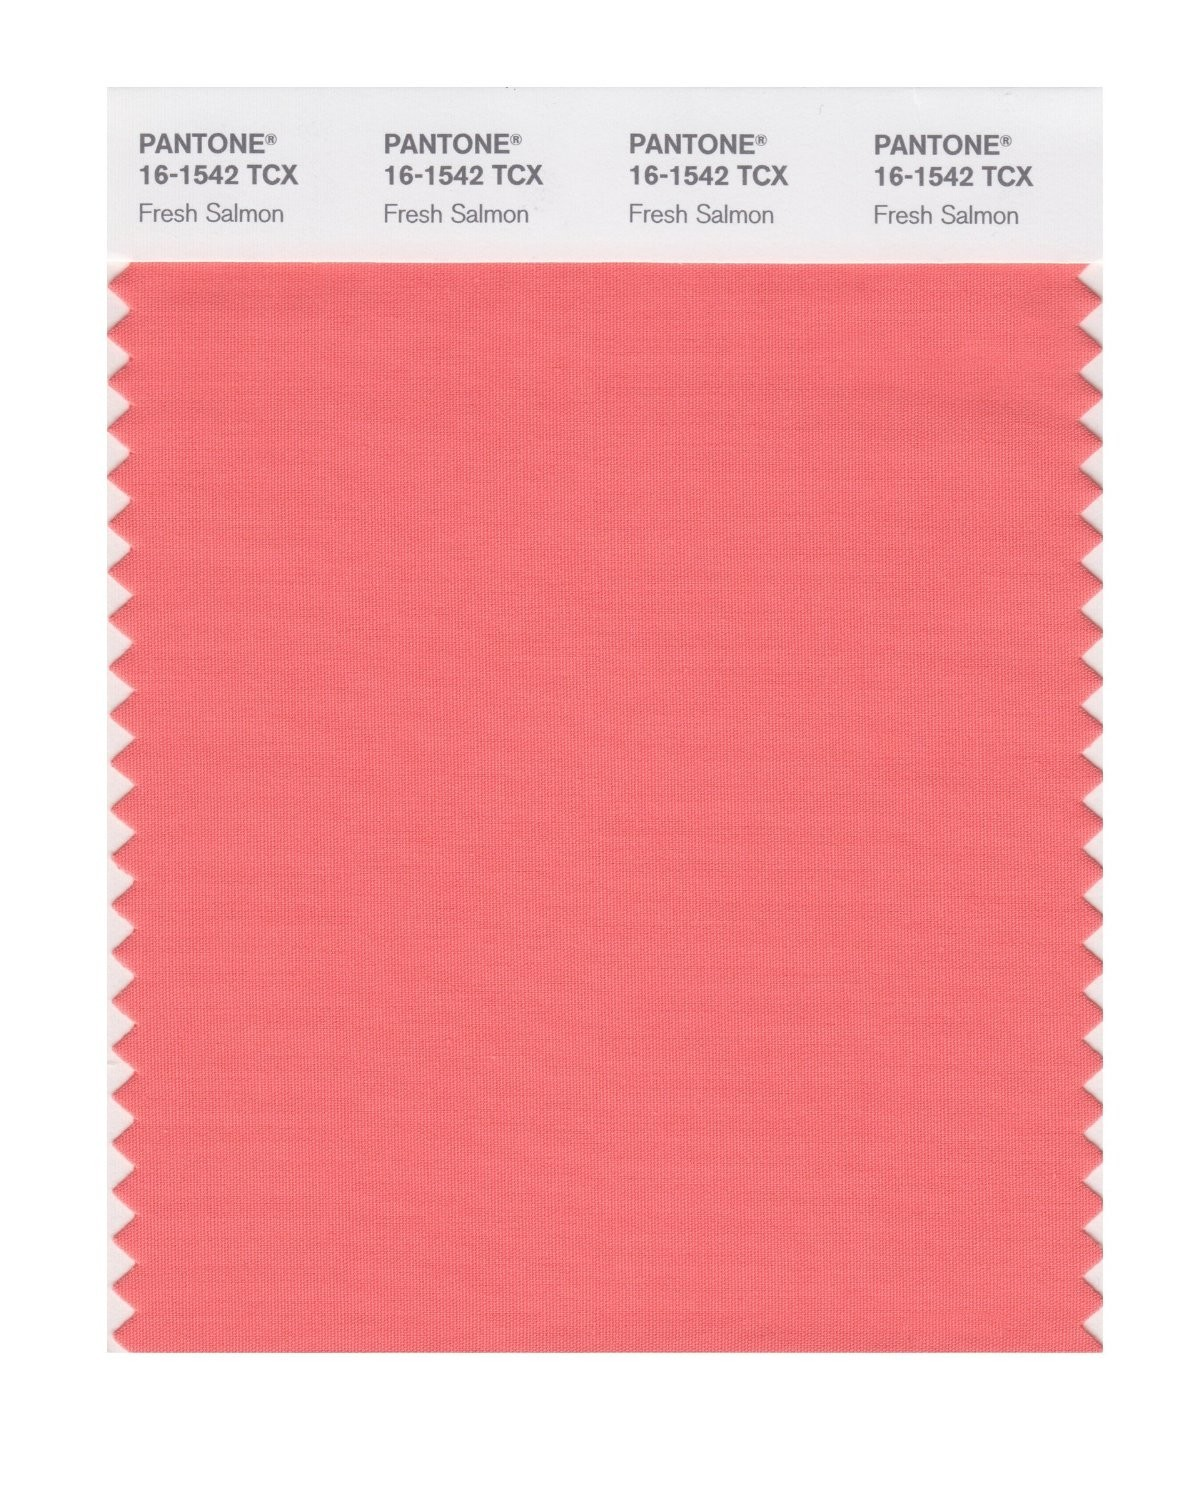 Pantone 16-1542 TCX Swatch Card Fresh Salmon